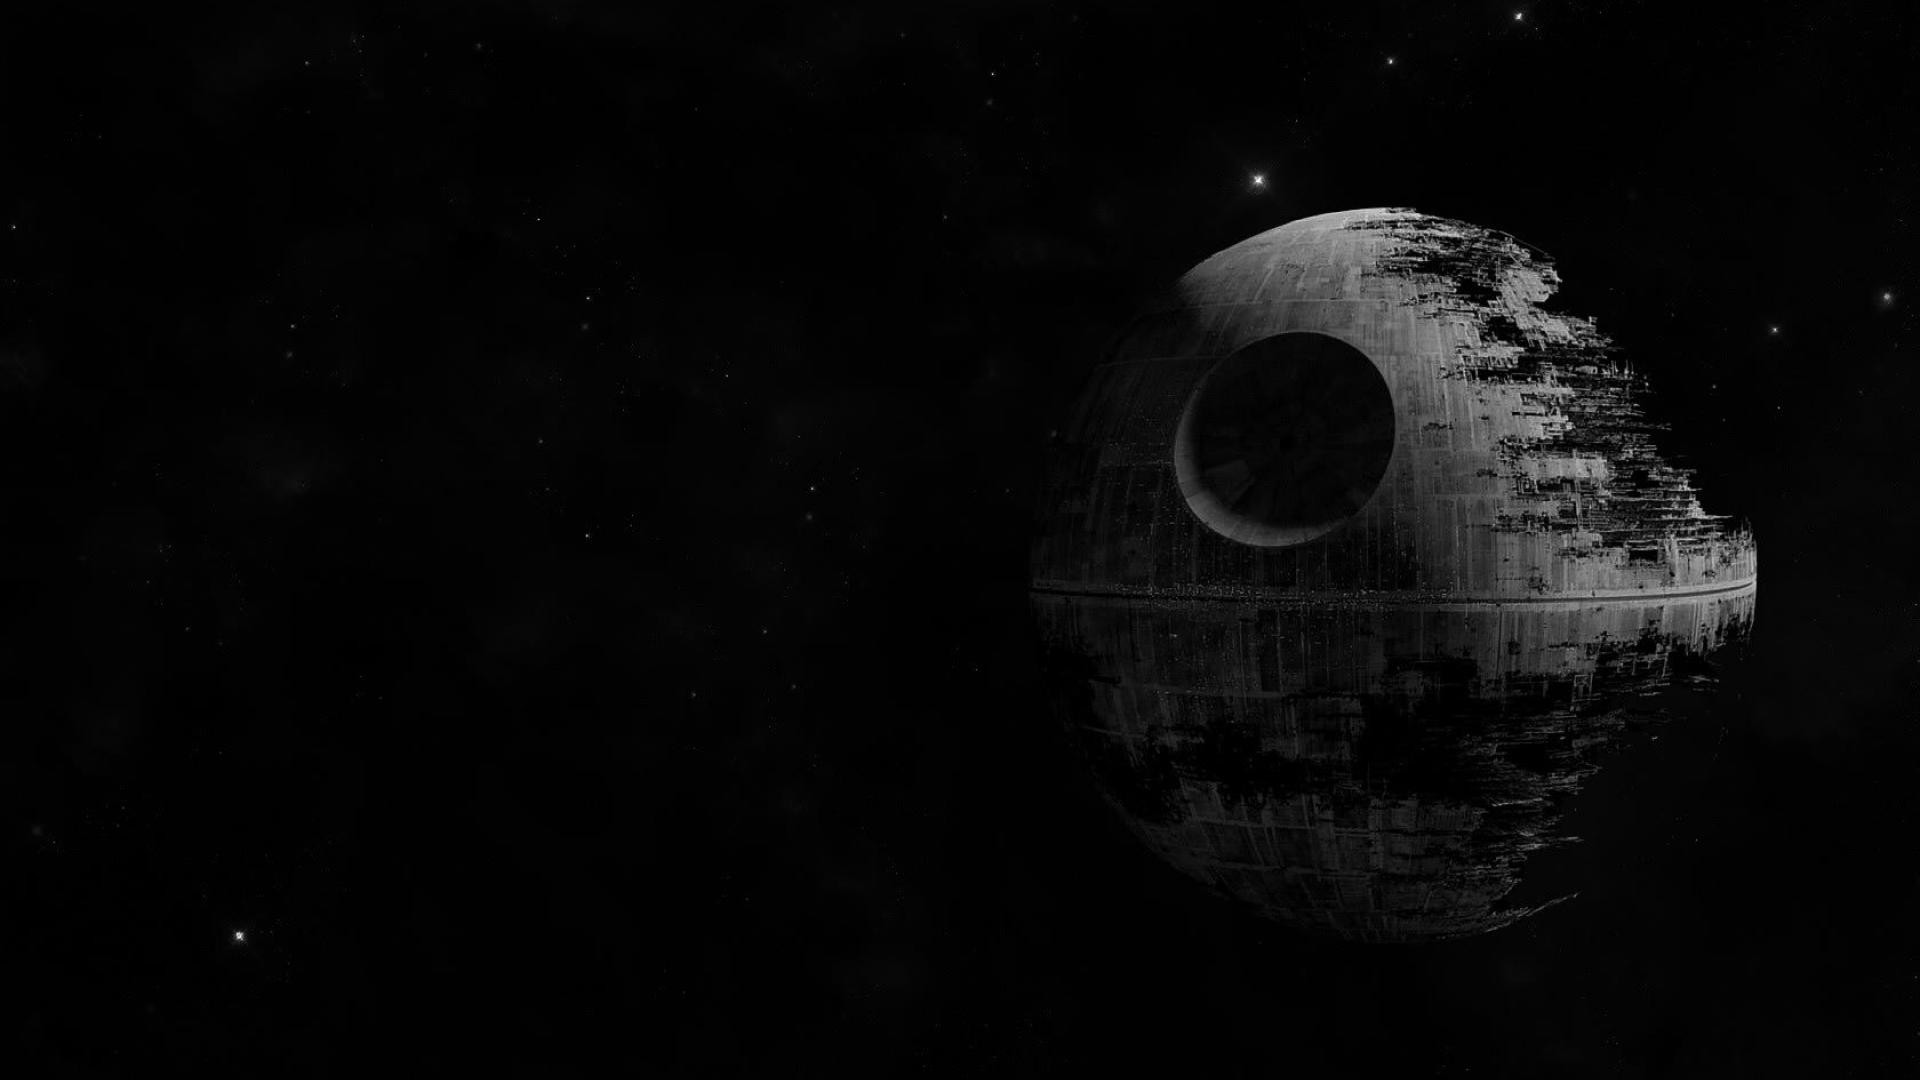 1920x1080 - 1920x1080 HD Wallpapers Star Wars 32